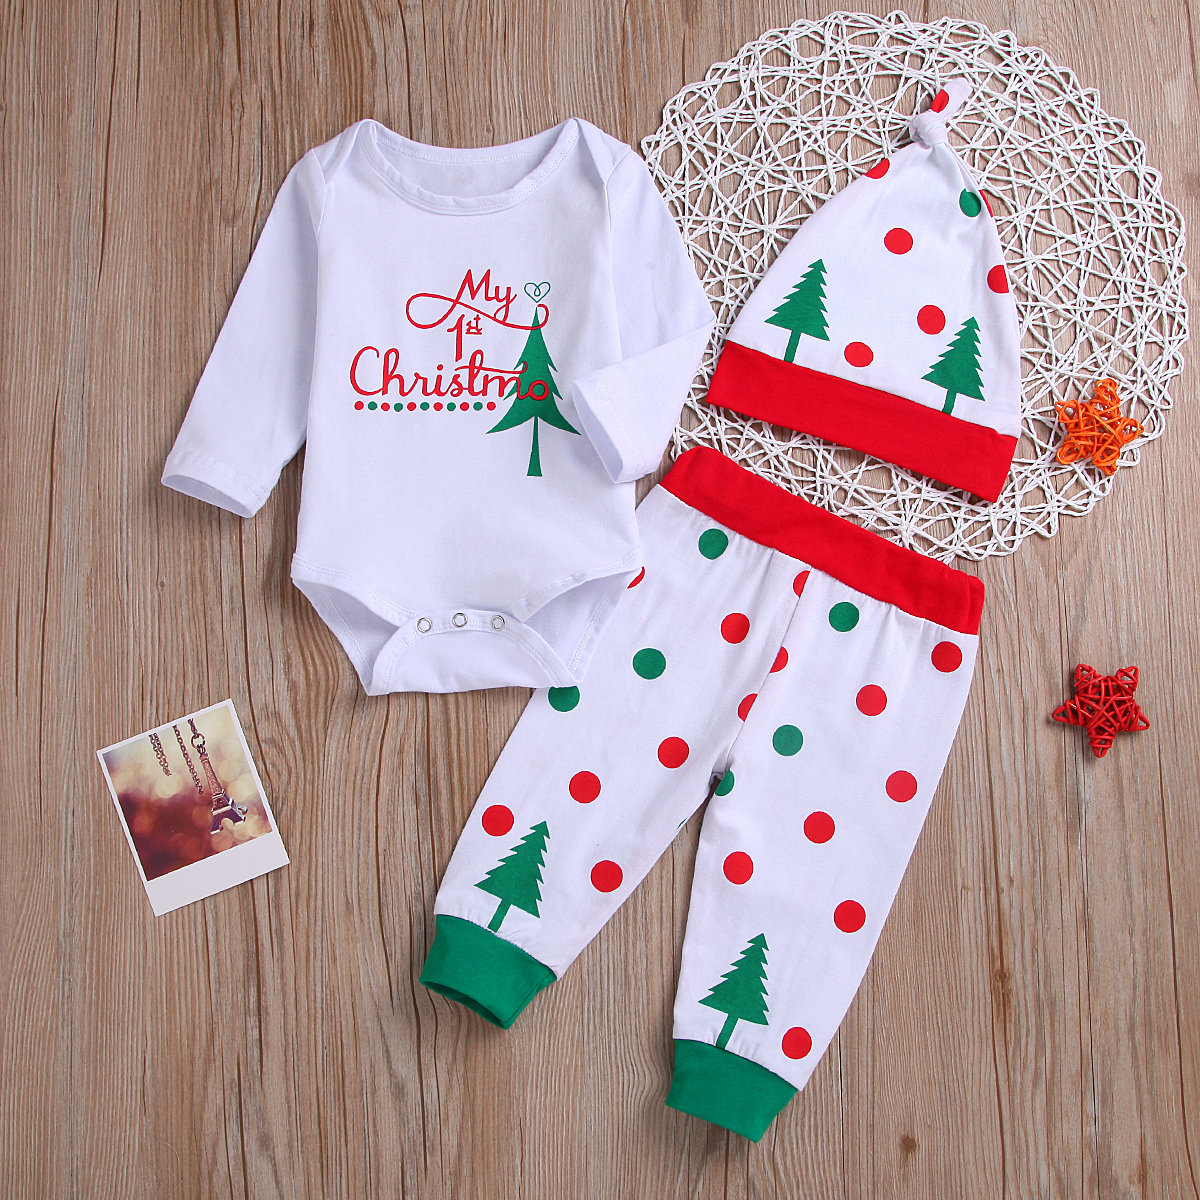 3pcs Newborn Baby Boy Girl Christmas Check Romper Tops+Long Pants Outfits Set US